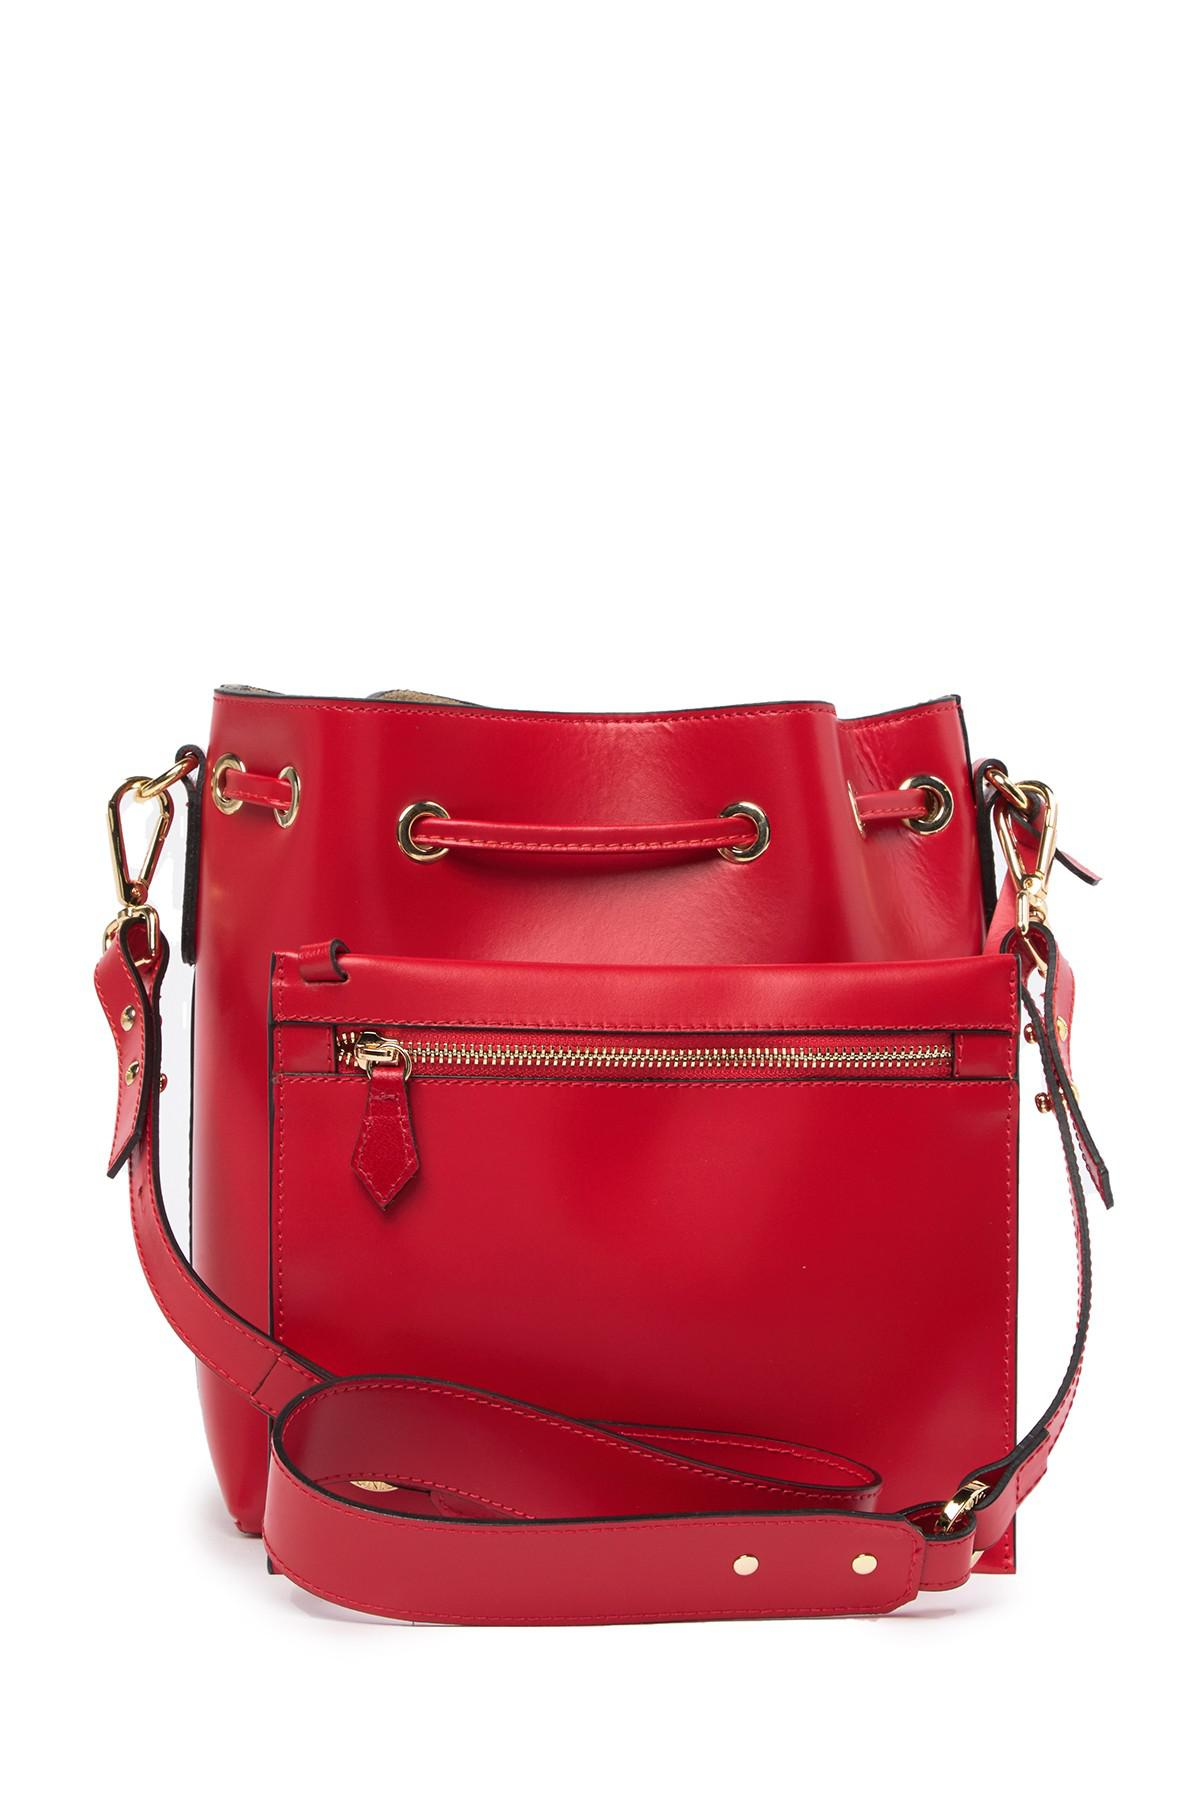 4d01bf8259 Valentino By Mario Valentino Honorine Leather Drawstring Shoulder ...